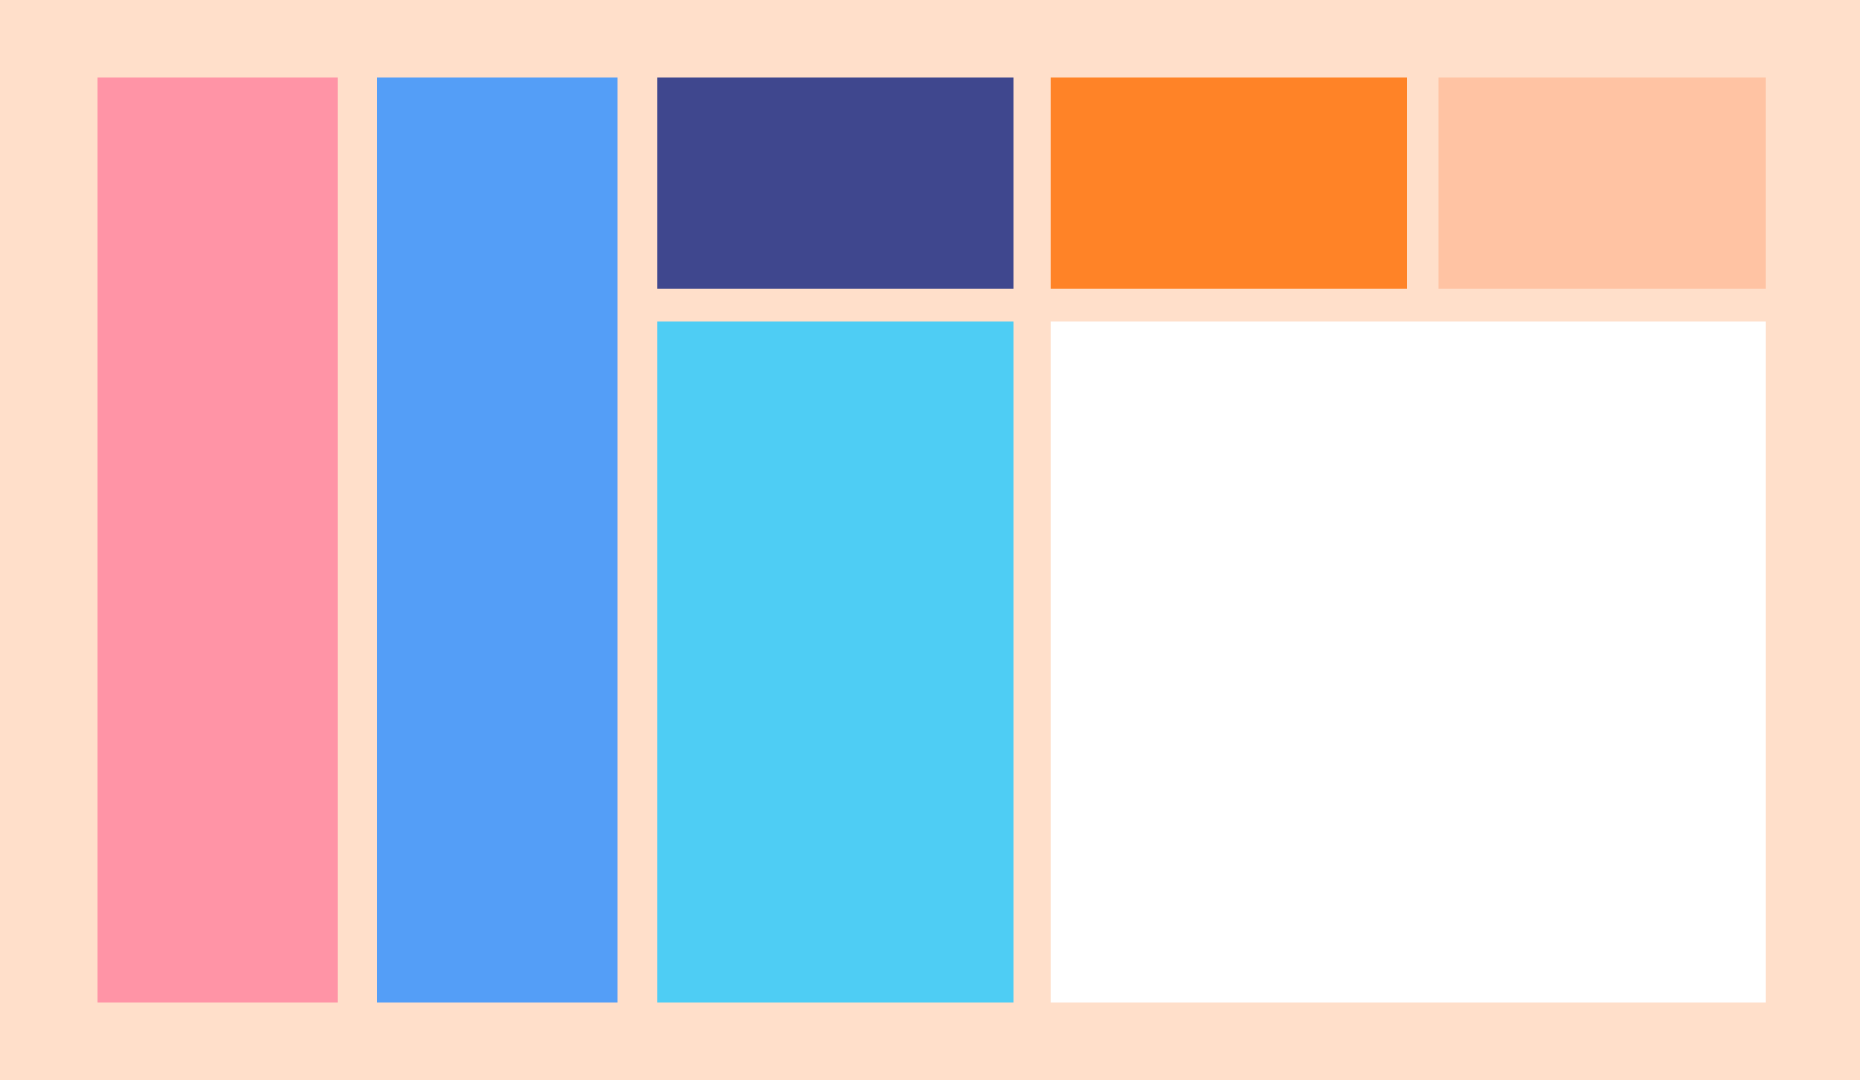 7 rectangles arranged as in a website layout